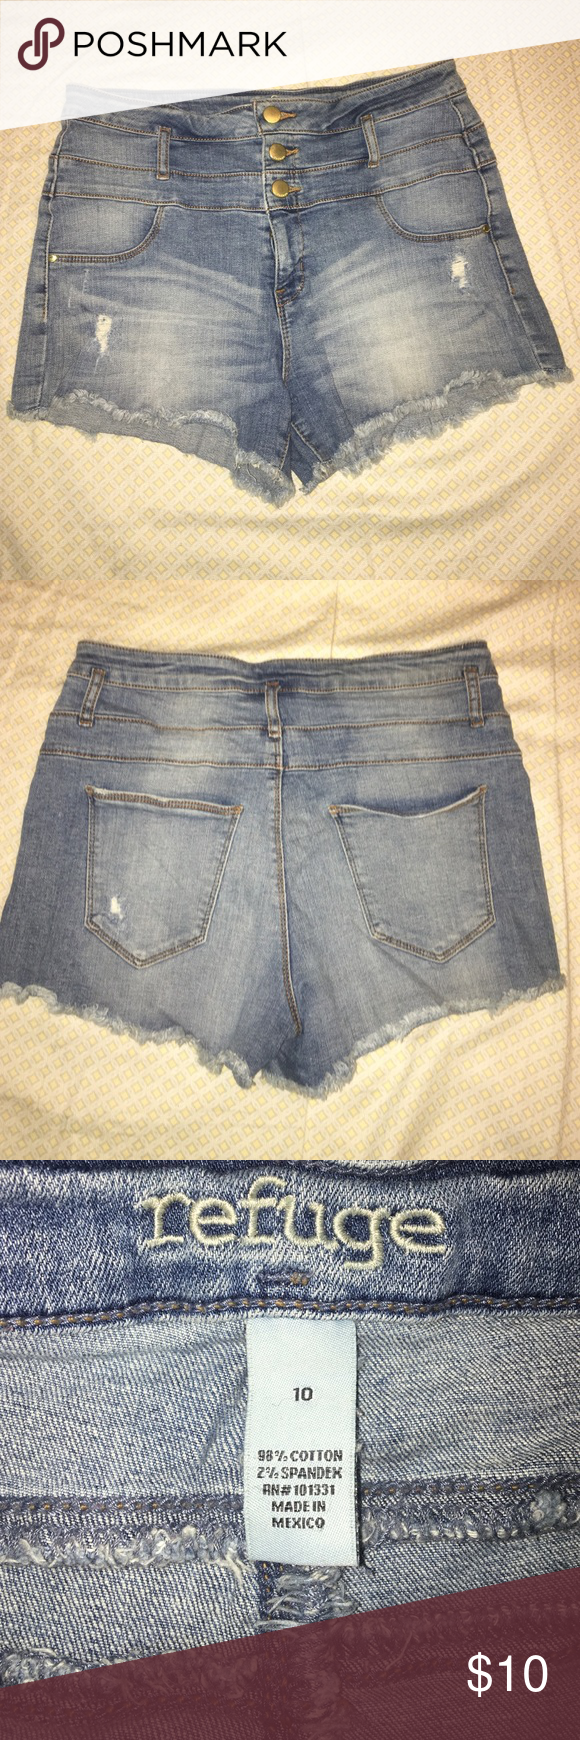 High waisted Denim Shorts High waisted Short Denim Shorts!! Great Condition. Extremely comfortable. refuge Shorts Jean Shorts